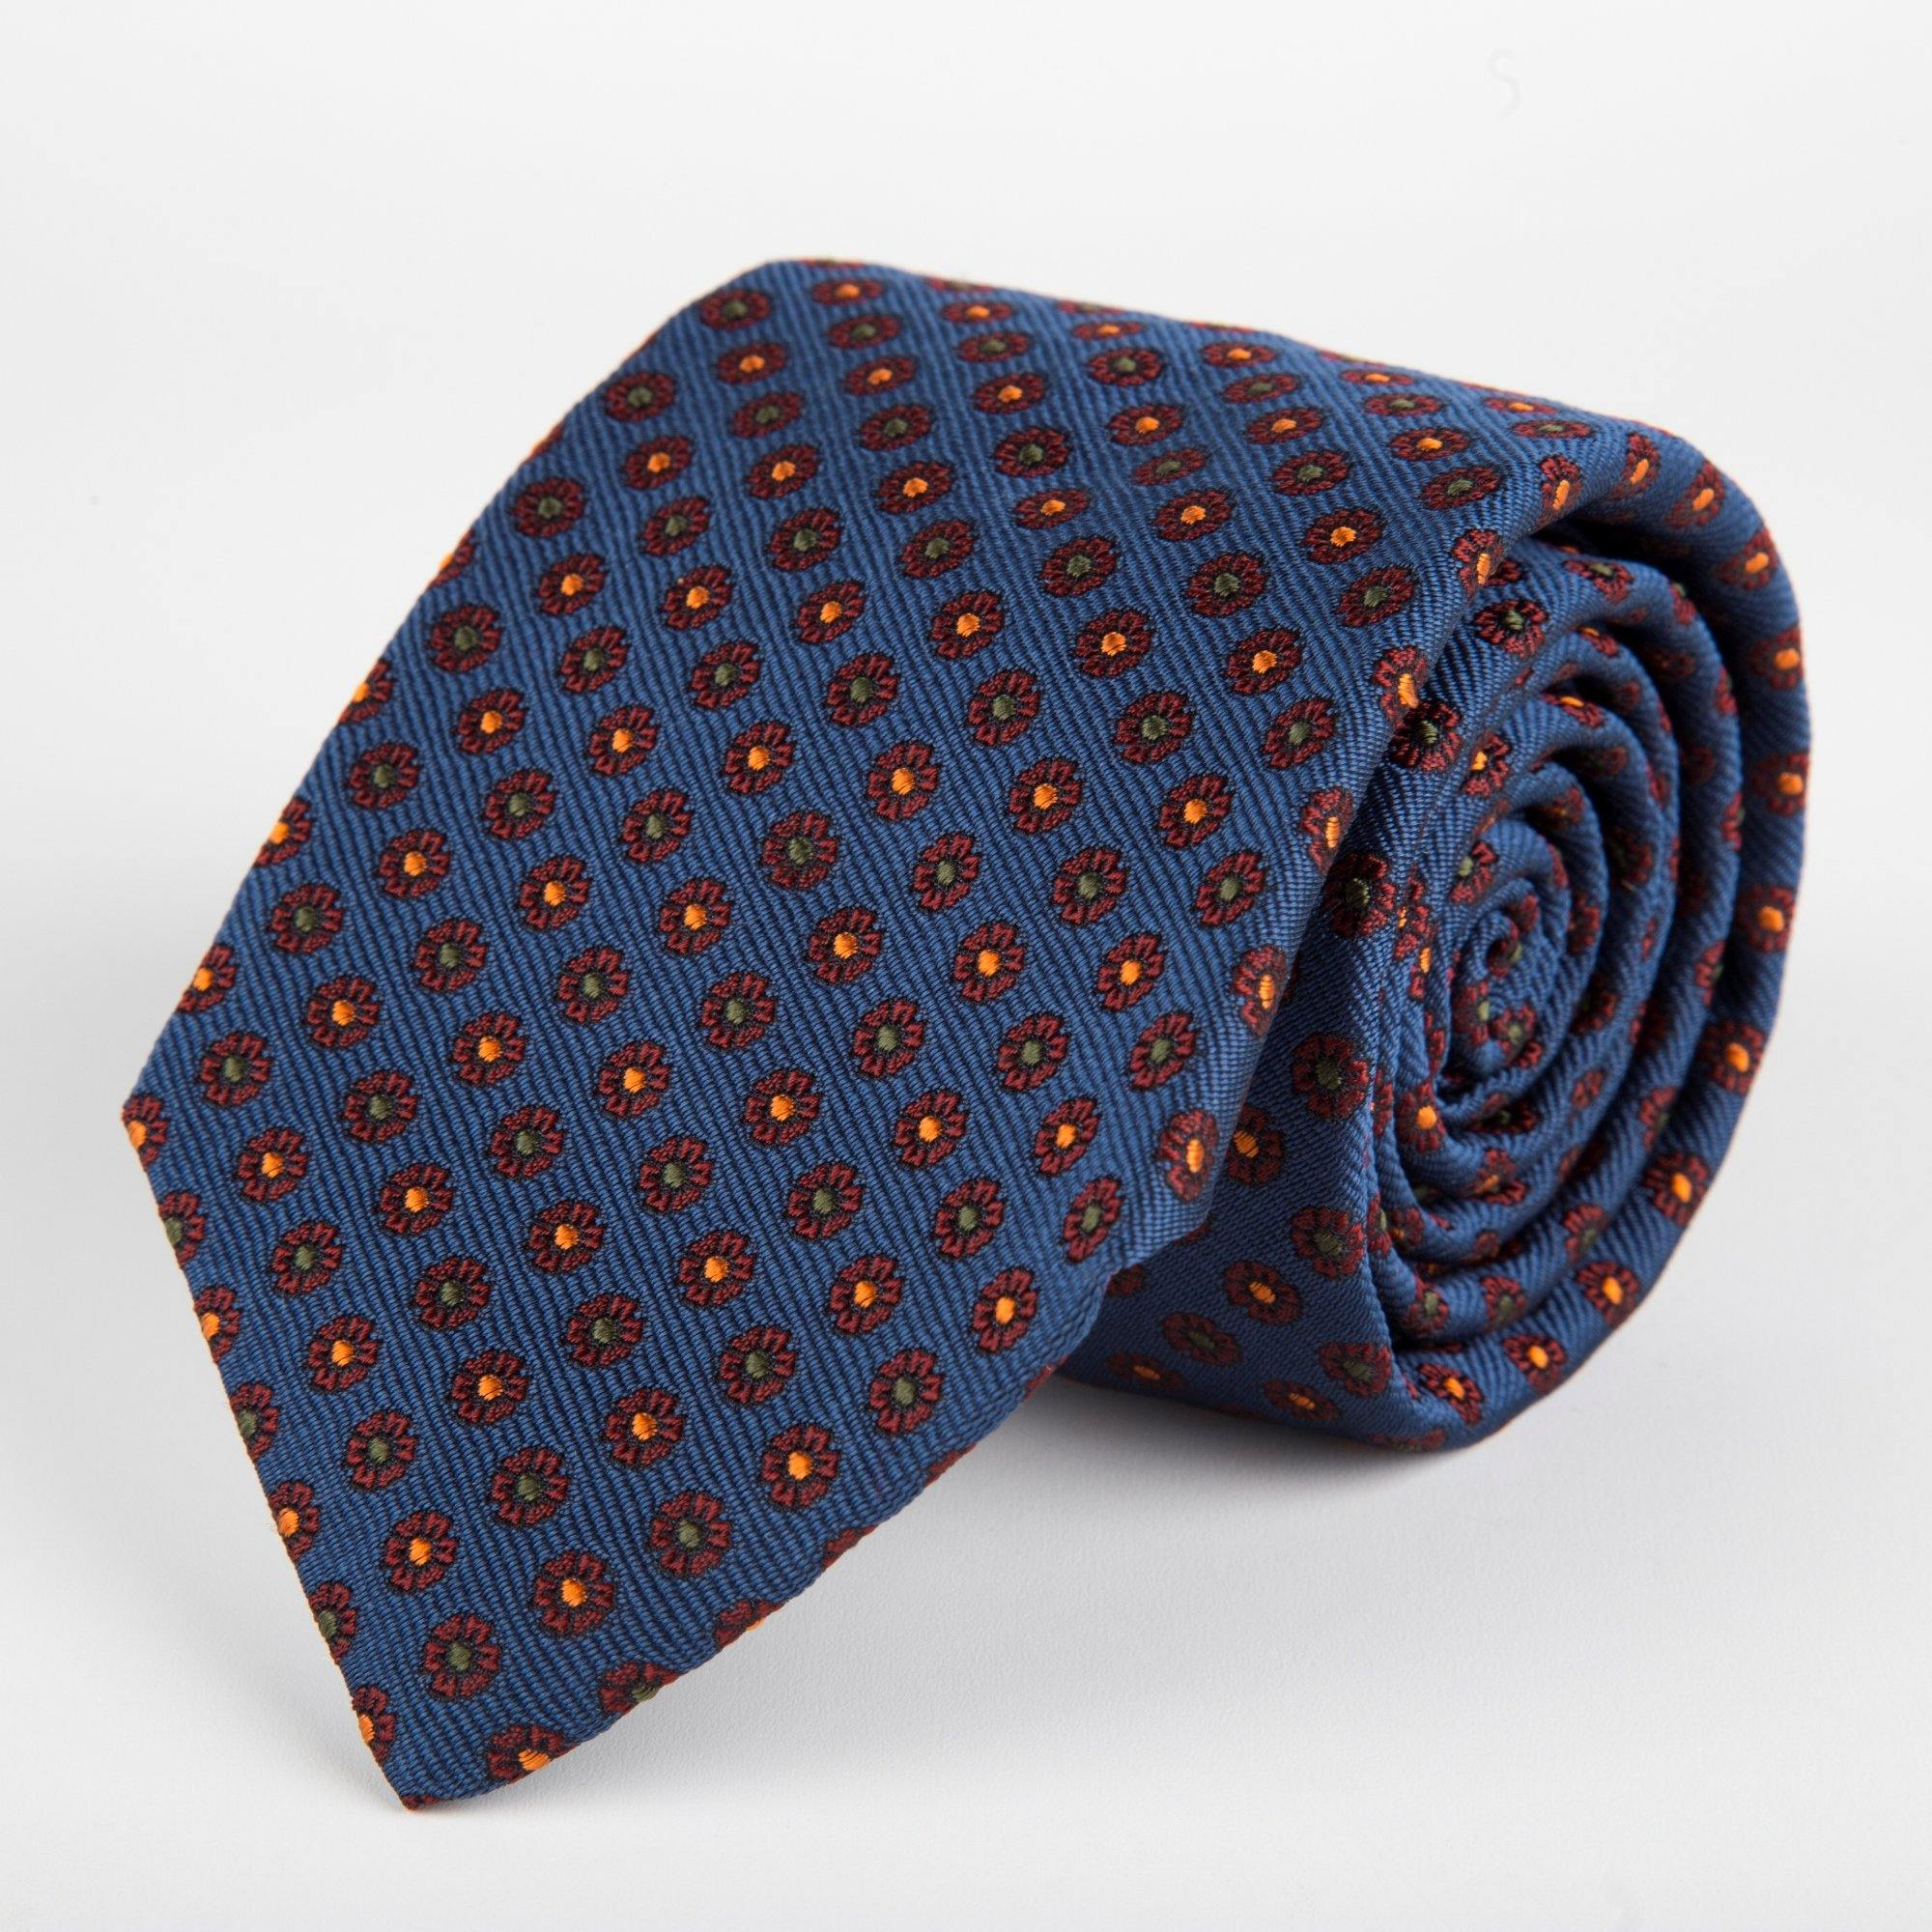 Blue Neat Flower Woven Silk Tie Hand Finished - British Made